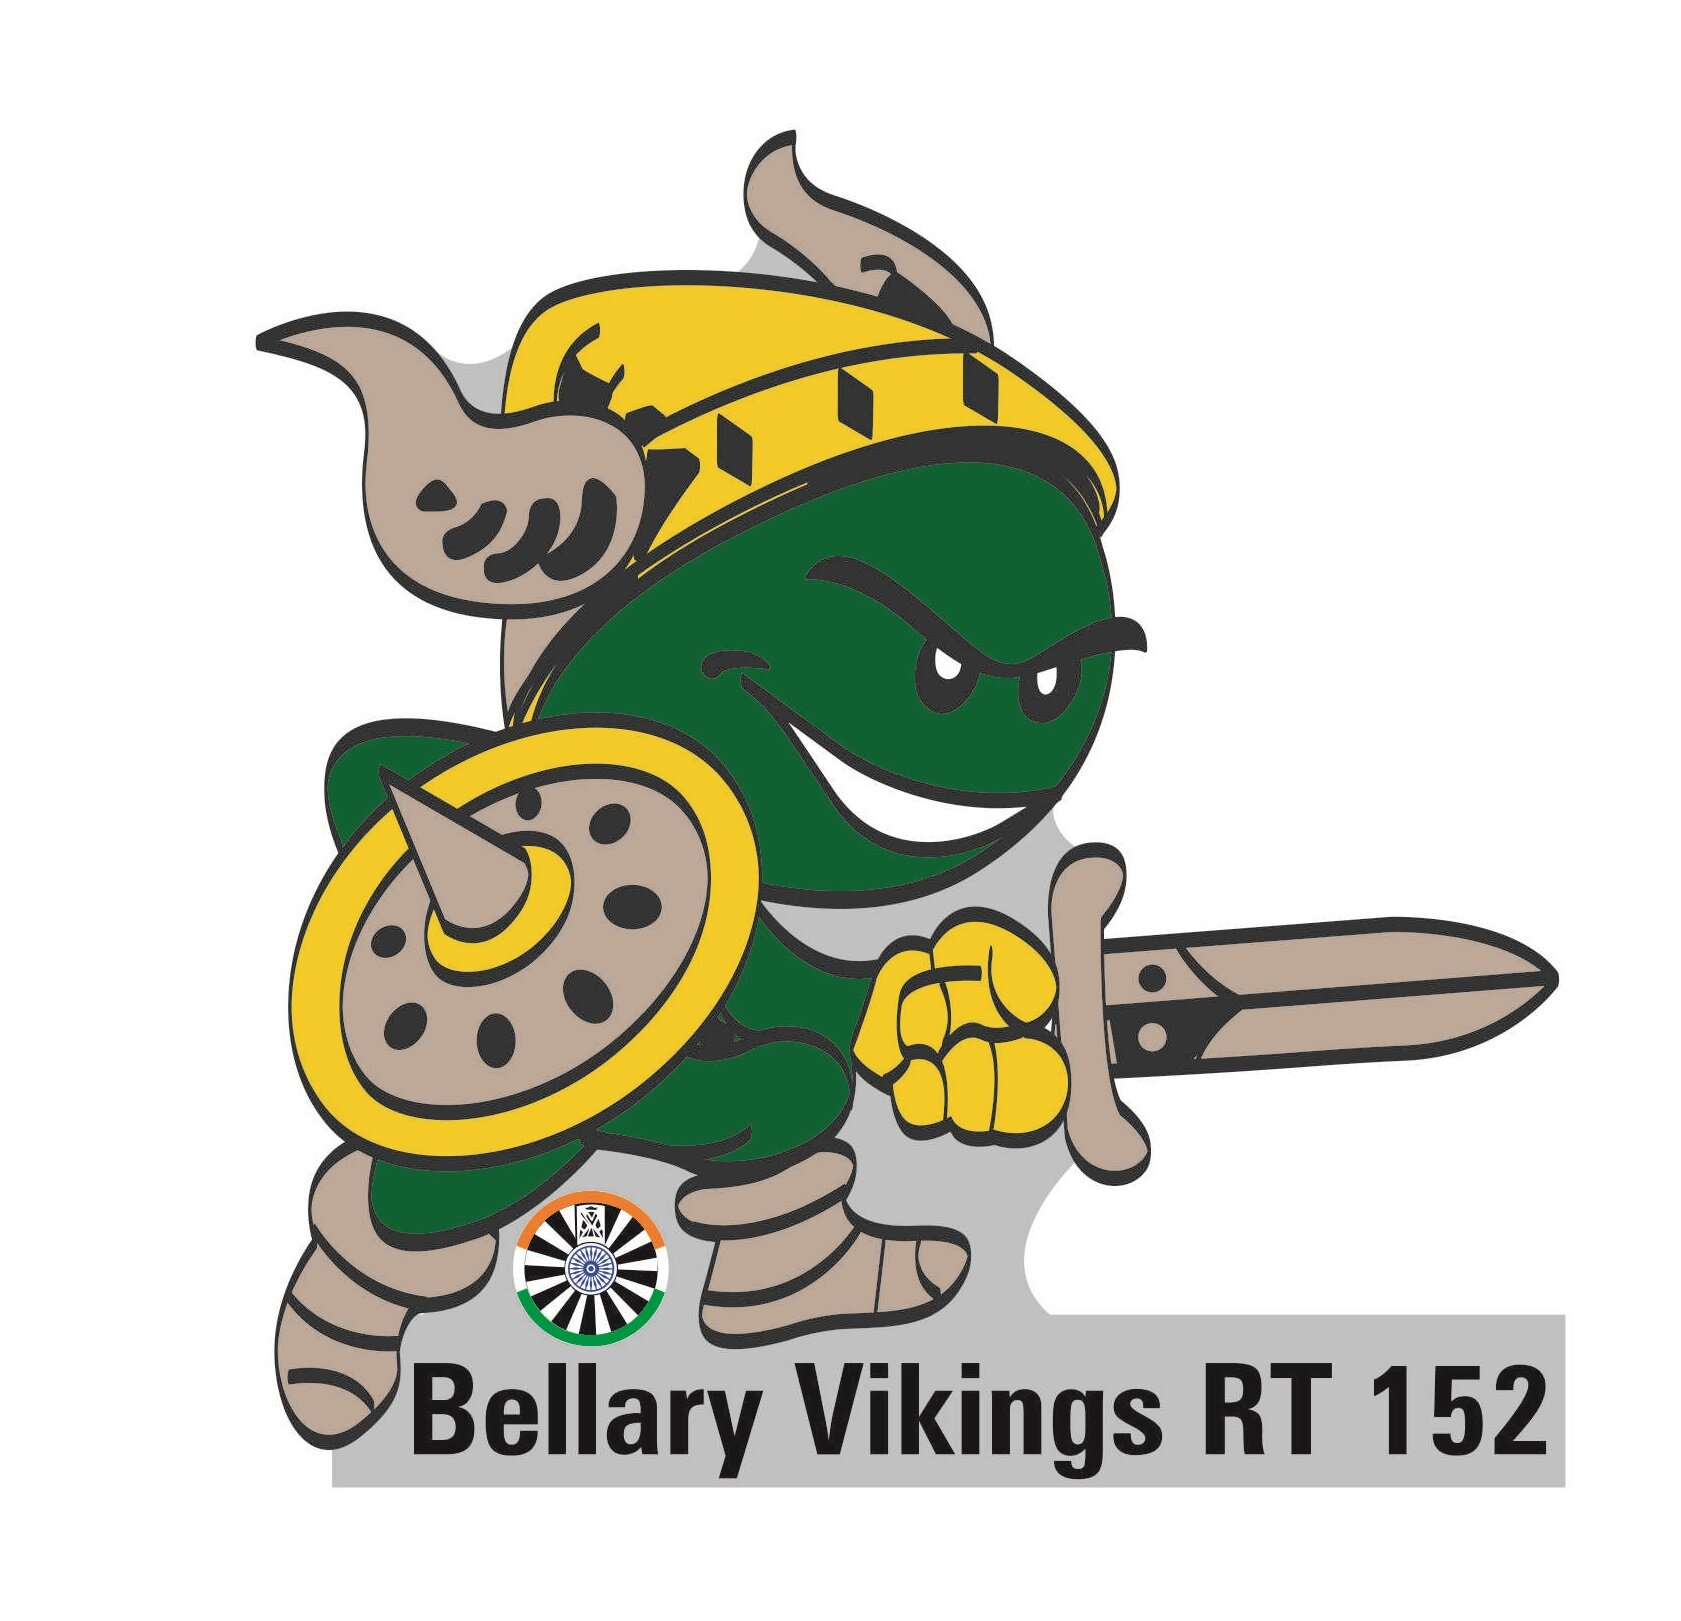 bellary vikings (@BVRT152).